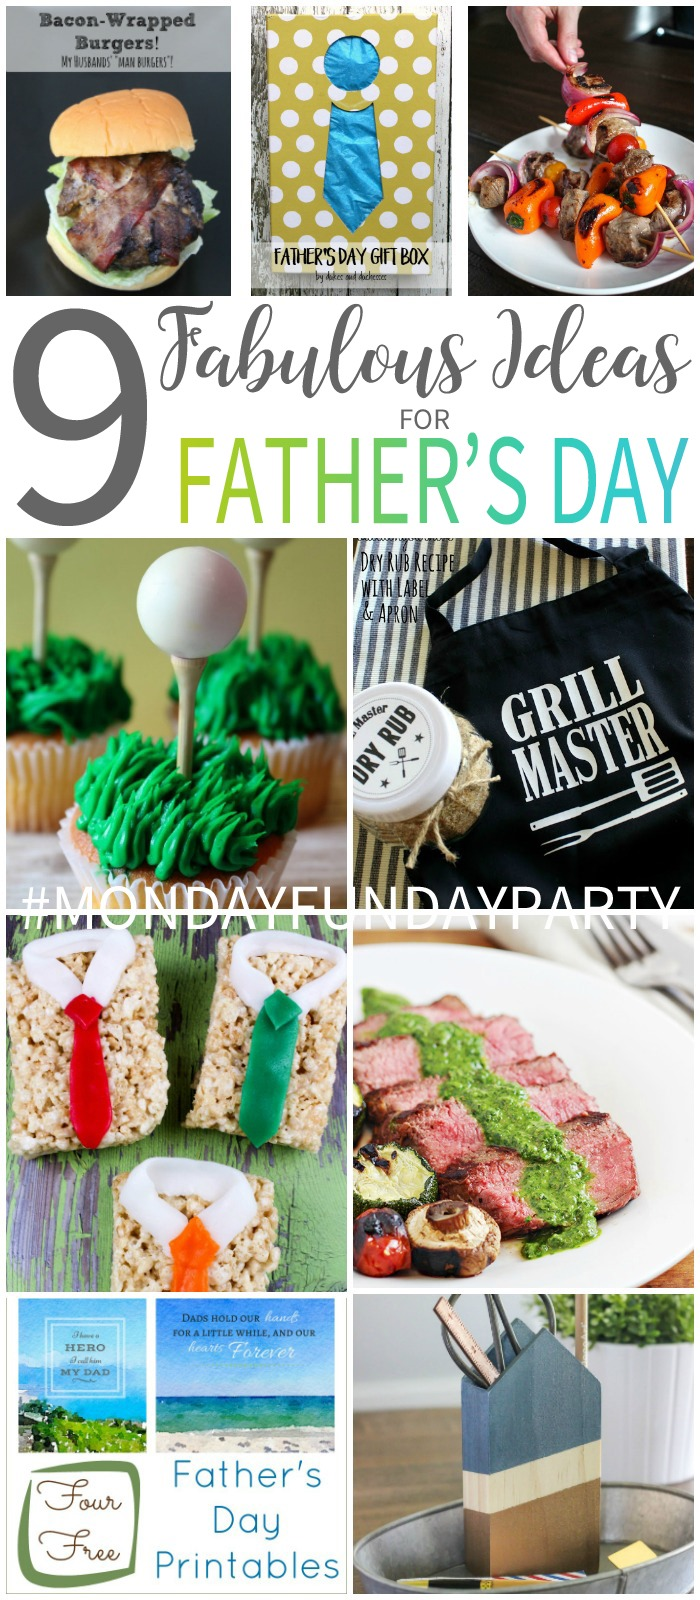 Fathers-Day-Ideas-at-Monday-Funday-Link-Party